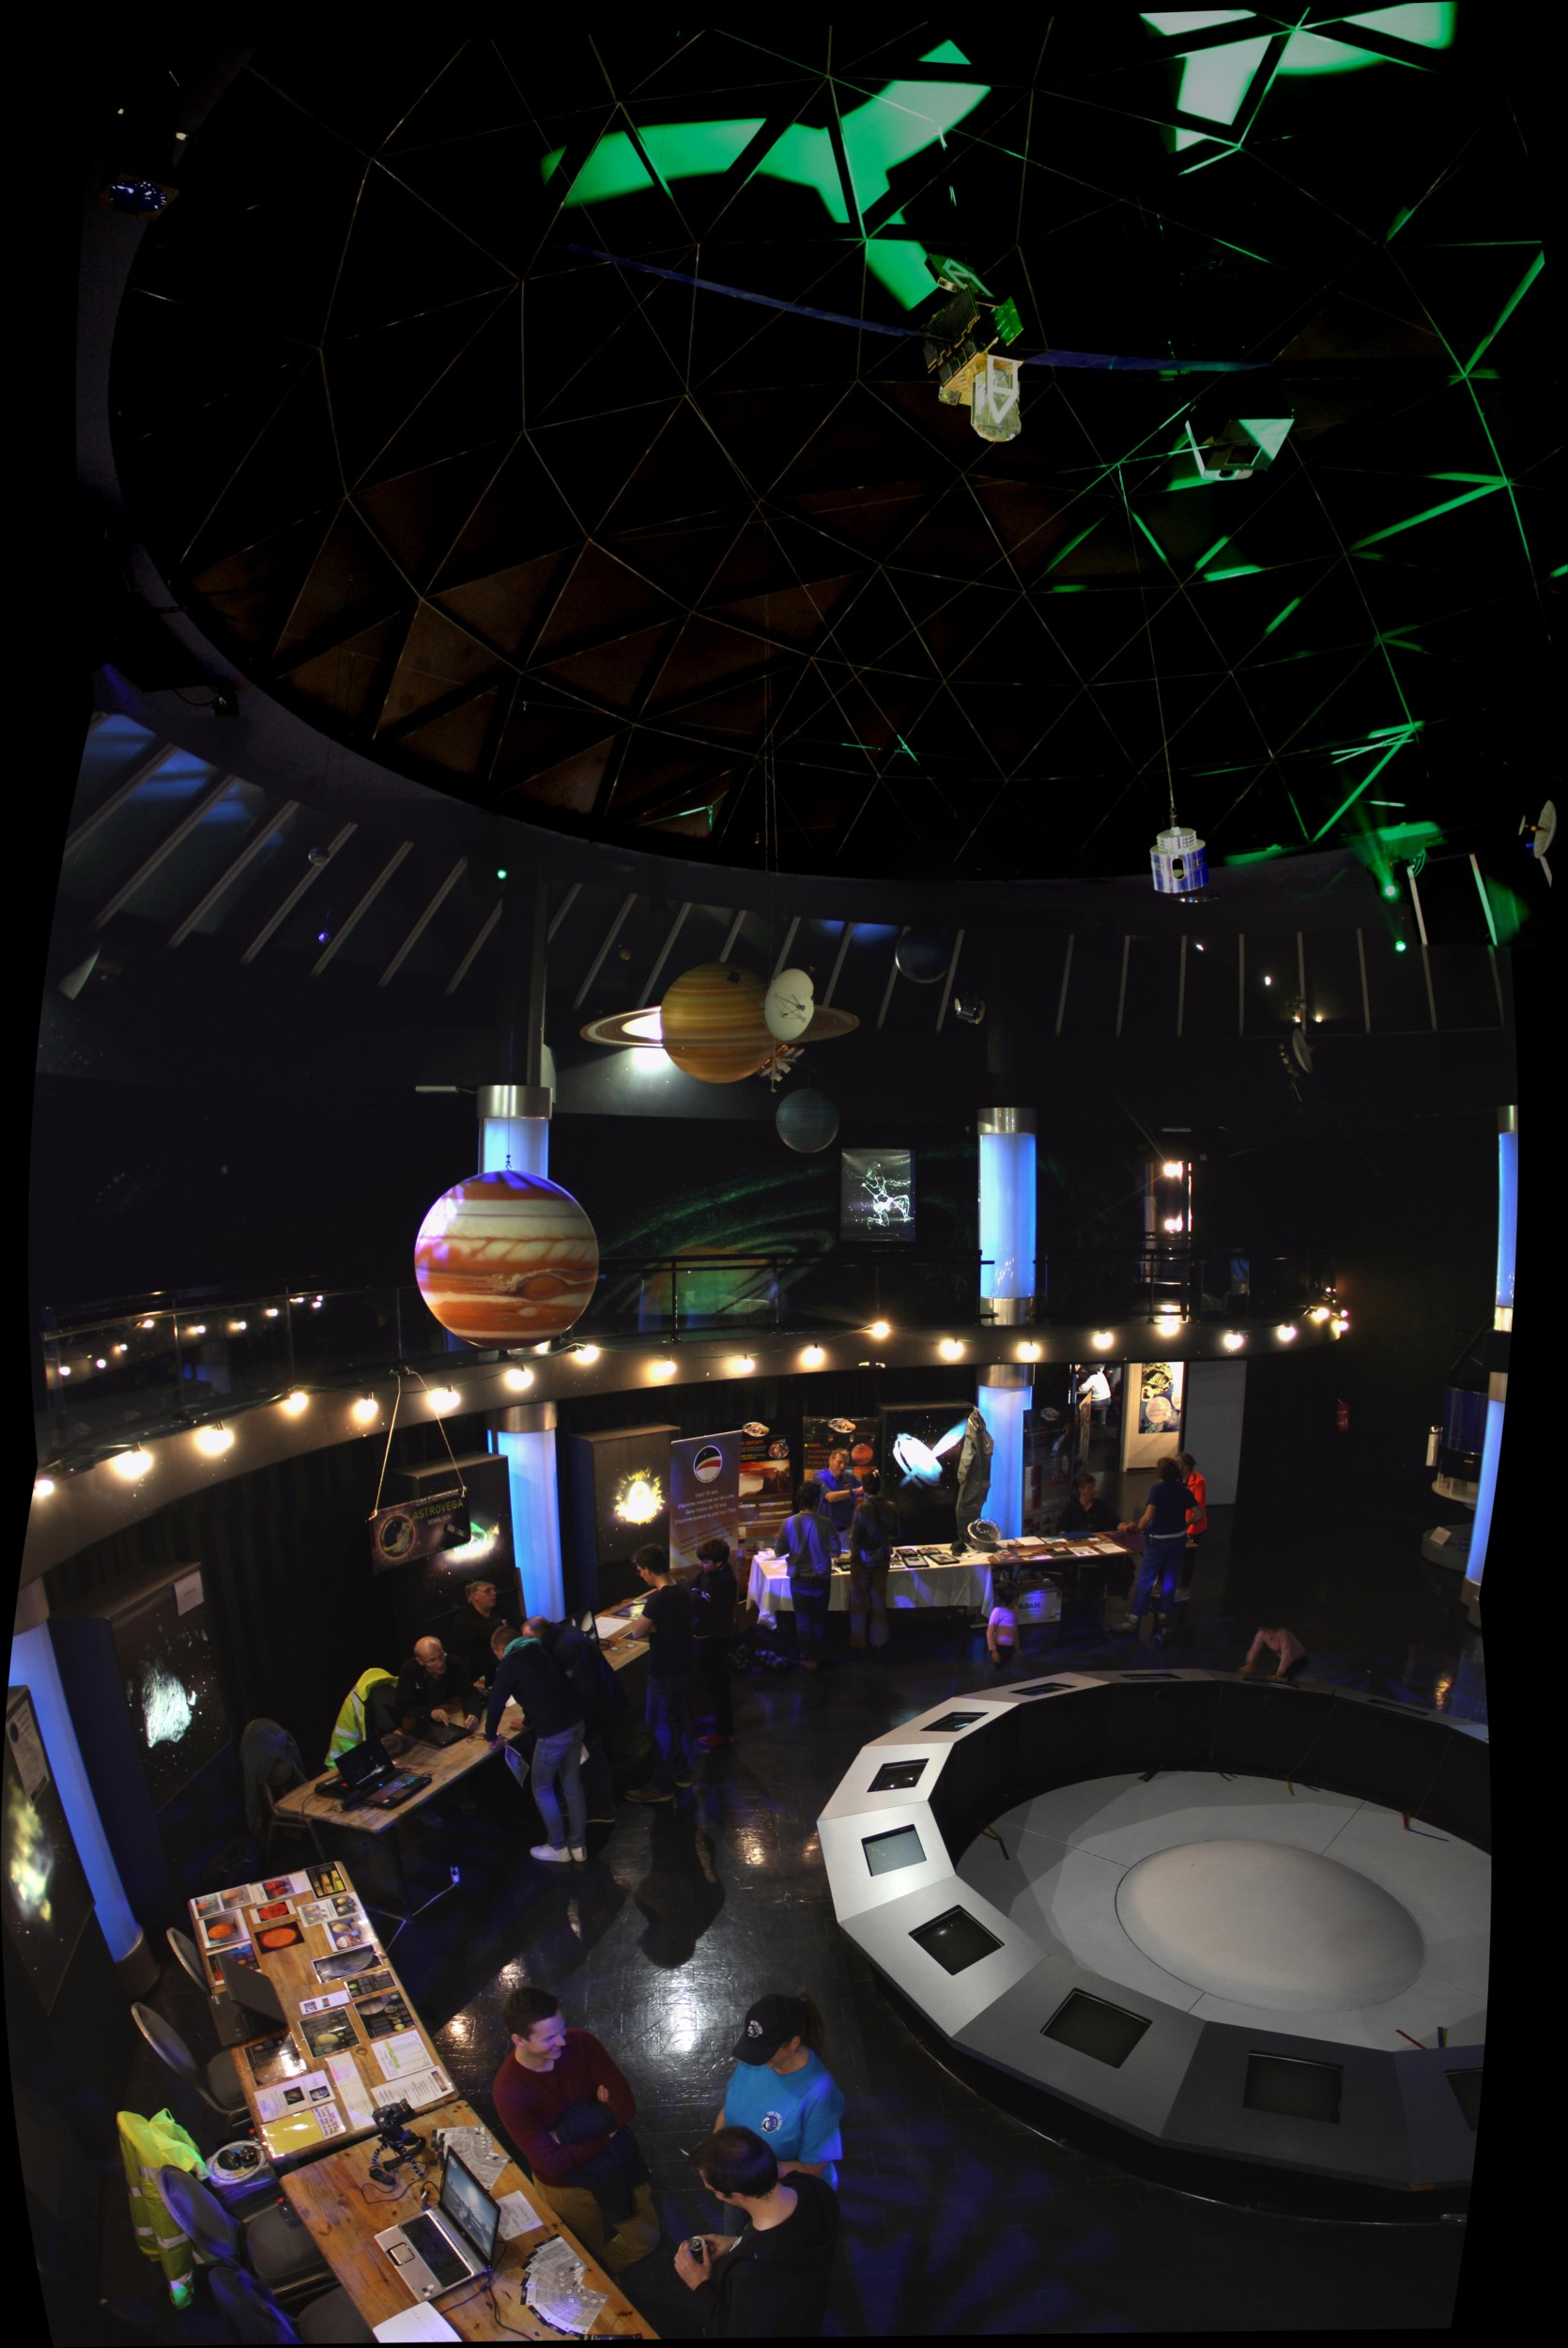 16 08 11 - 20h 00m 32s - euro space center tr_stitch r